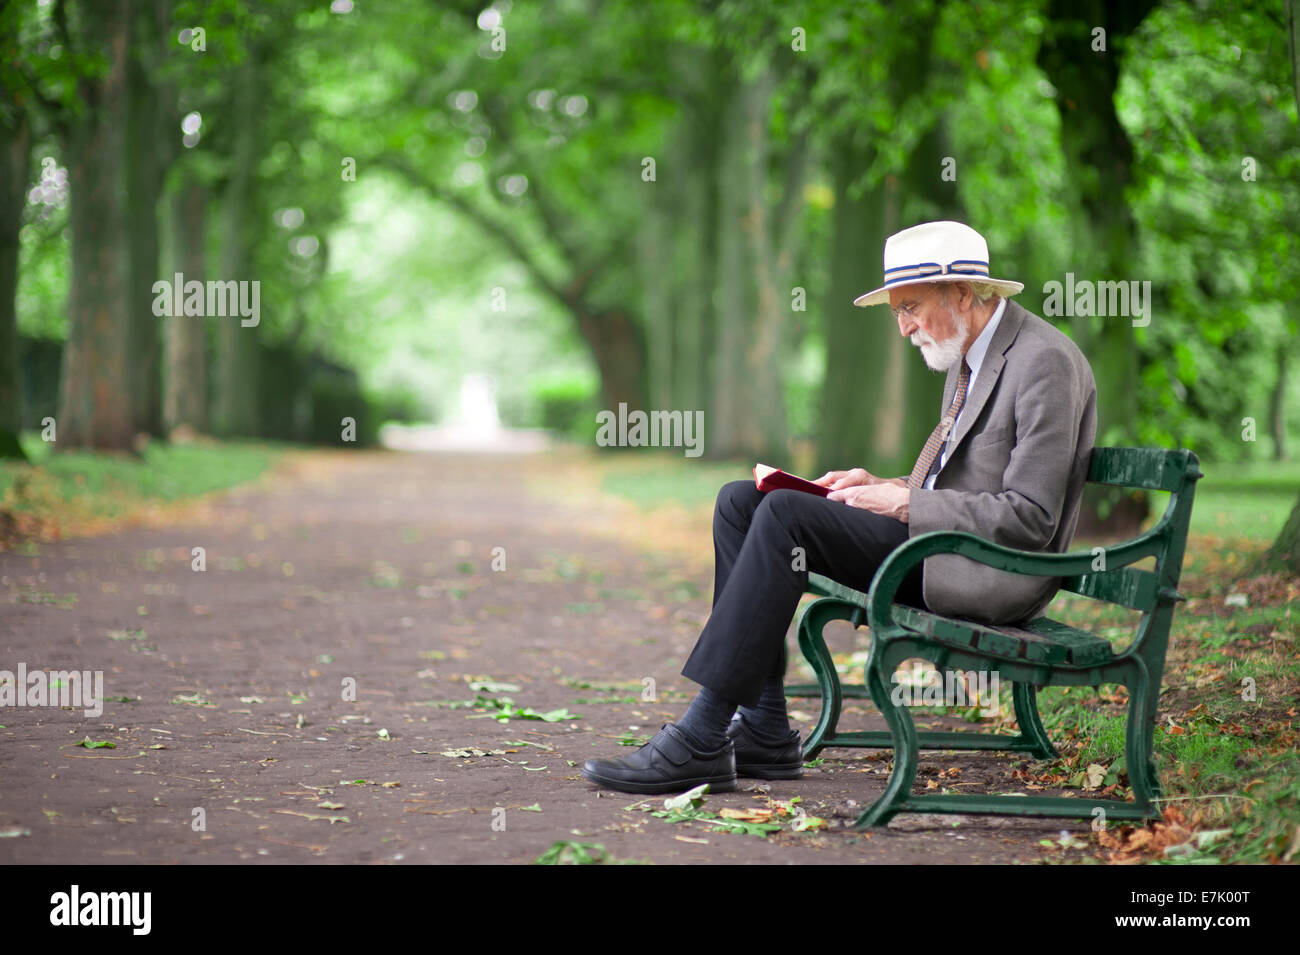 Senior Man Reading A Book On A Park Bench Stock Photo 73561176 Alamy